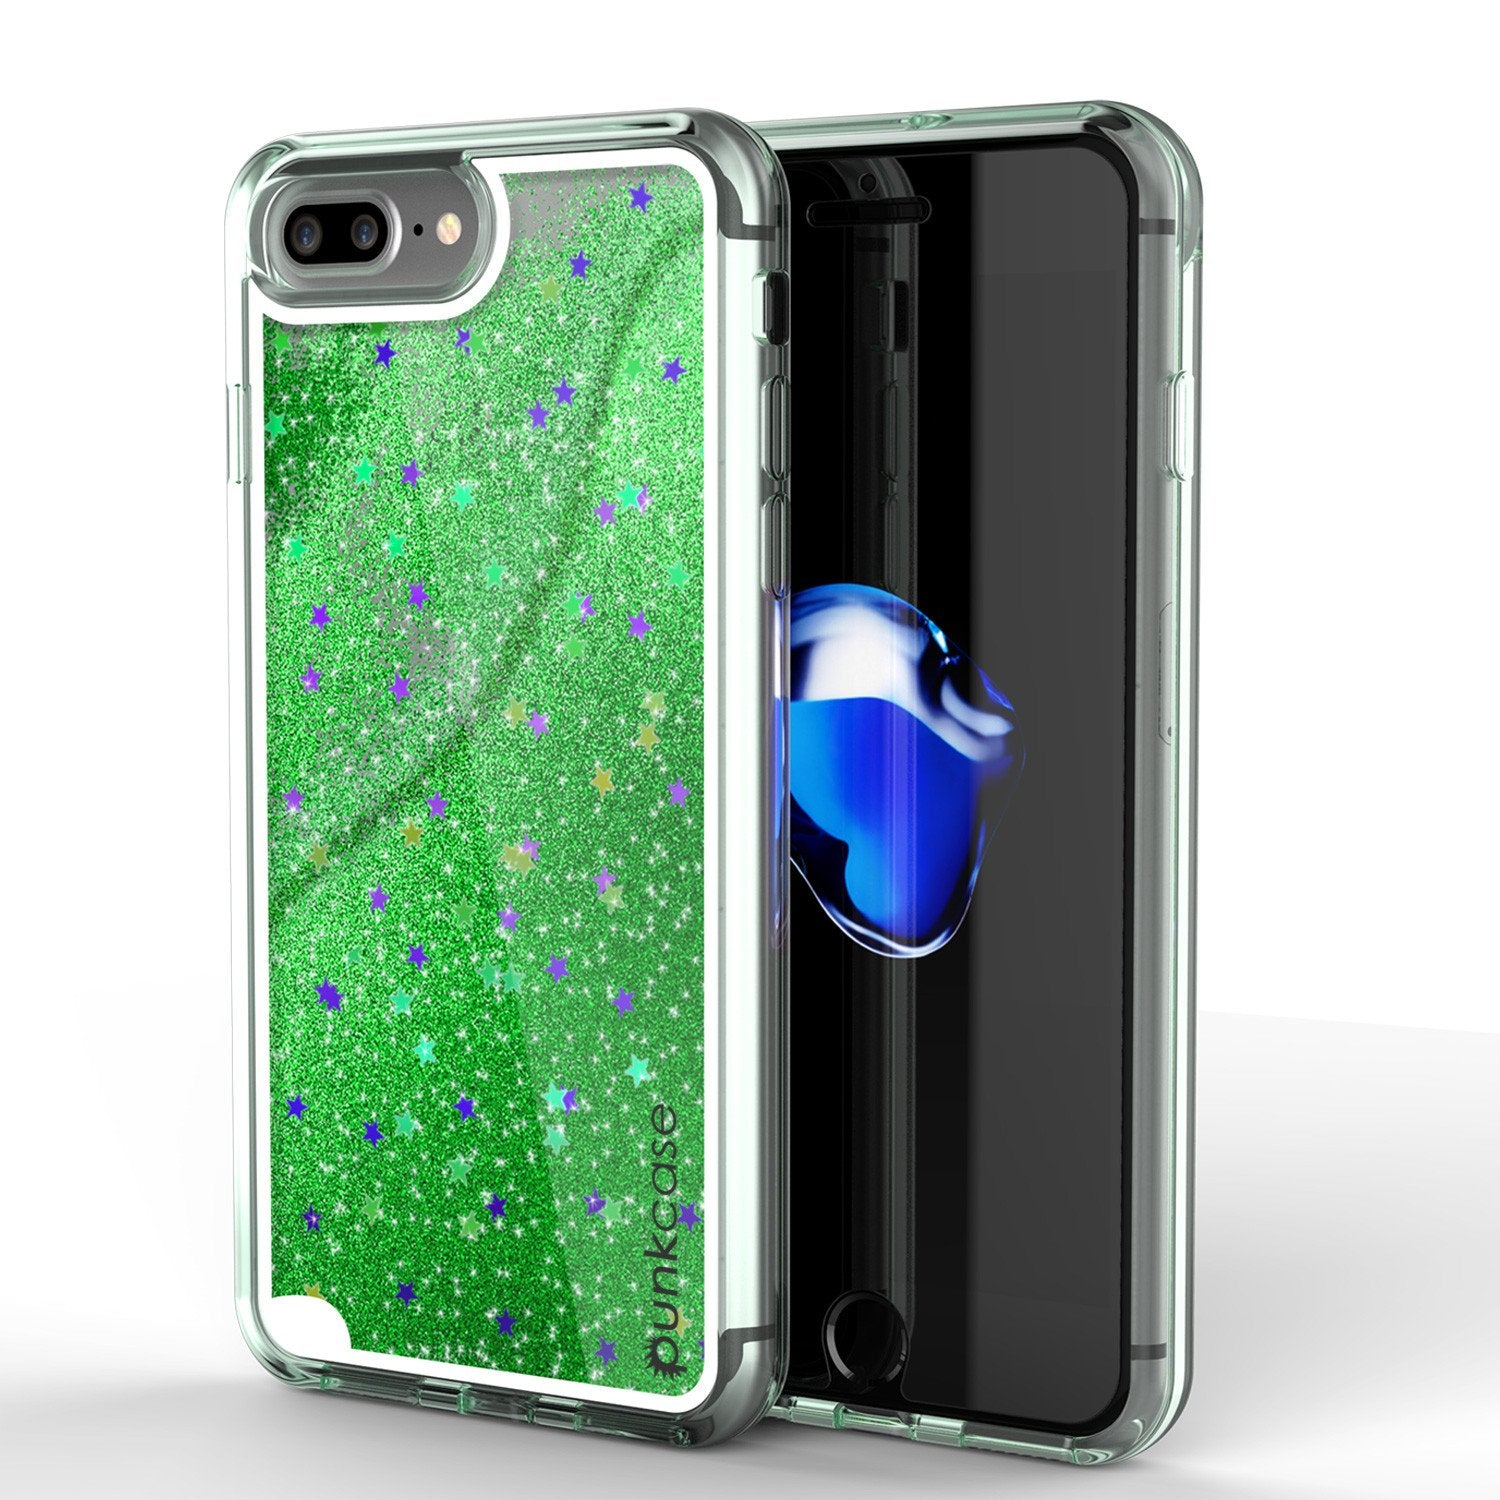 iPhone 8+ Plus Case, PunkCase LIQUID Green Series, Protective Dual Layer Floating Glitter Cover